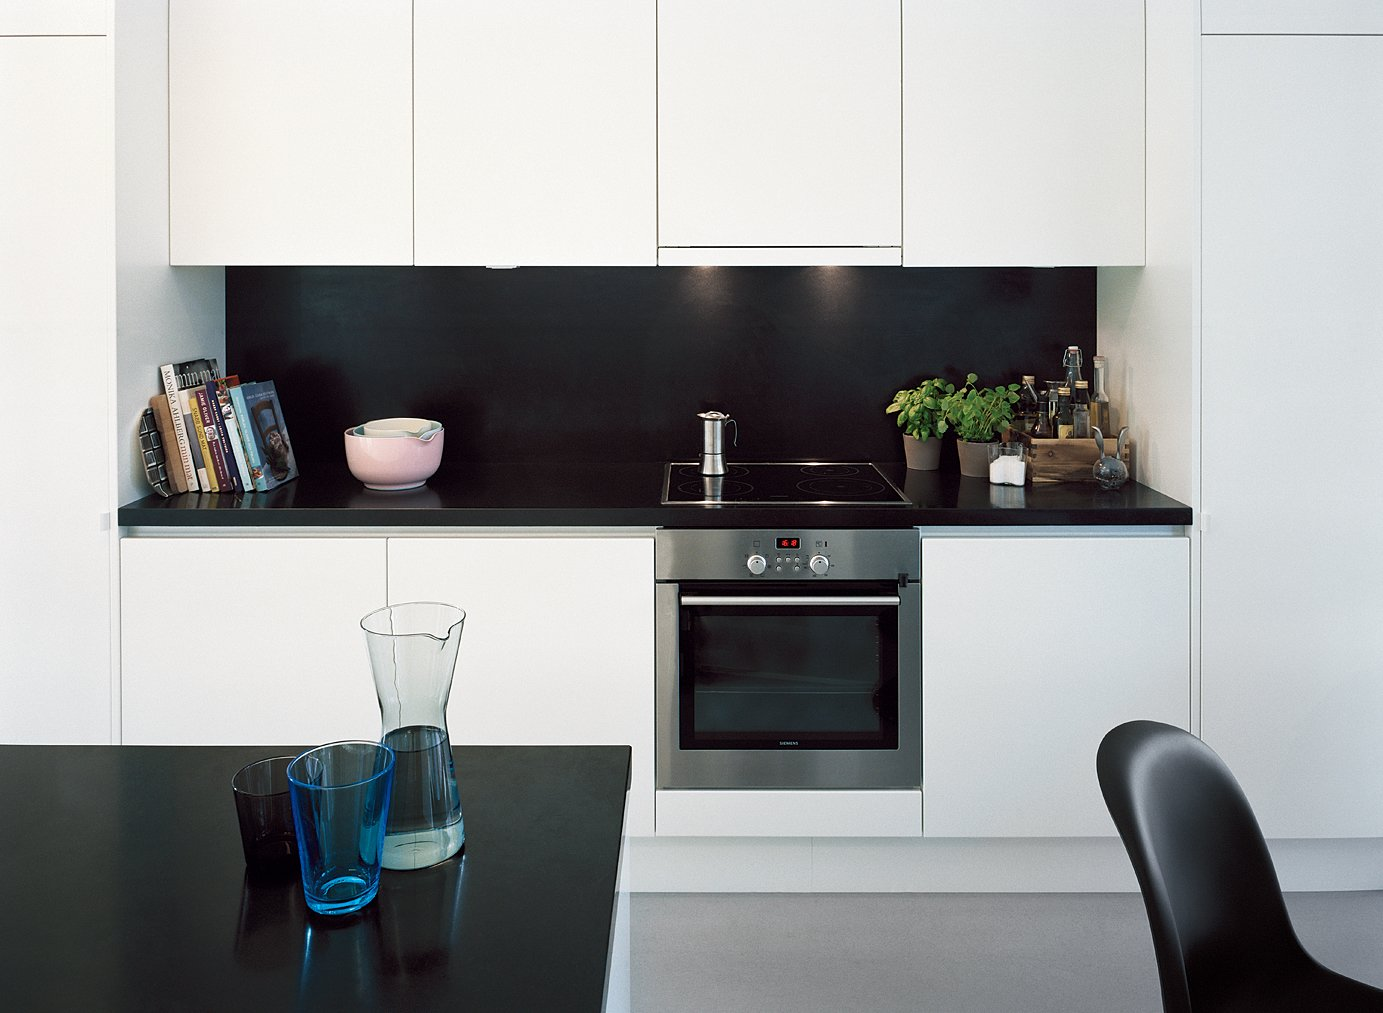 Kitchen, White Cabinet, and Laminate Counter Laminated-MDF cabinetry helps to hide clutter in the kitchen.  Photo 4 of 13 in Sum of Its Parts